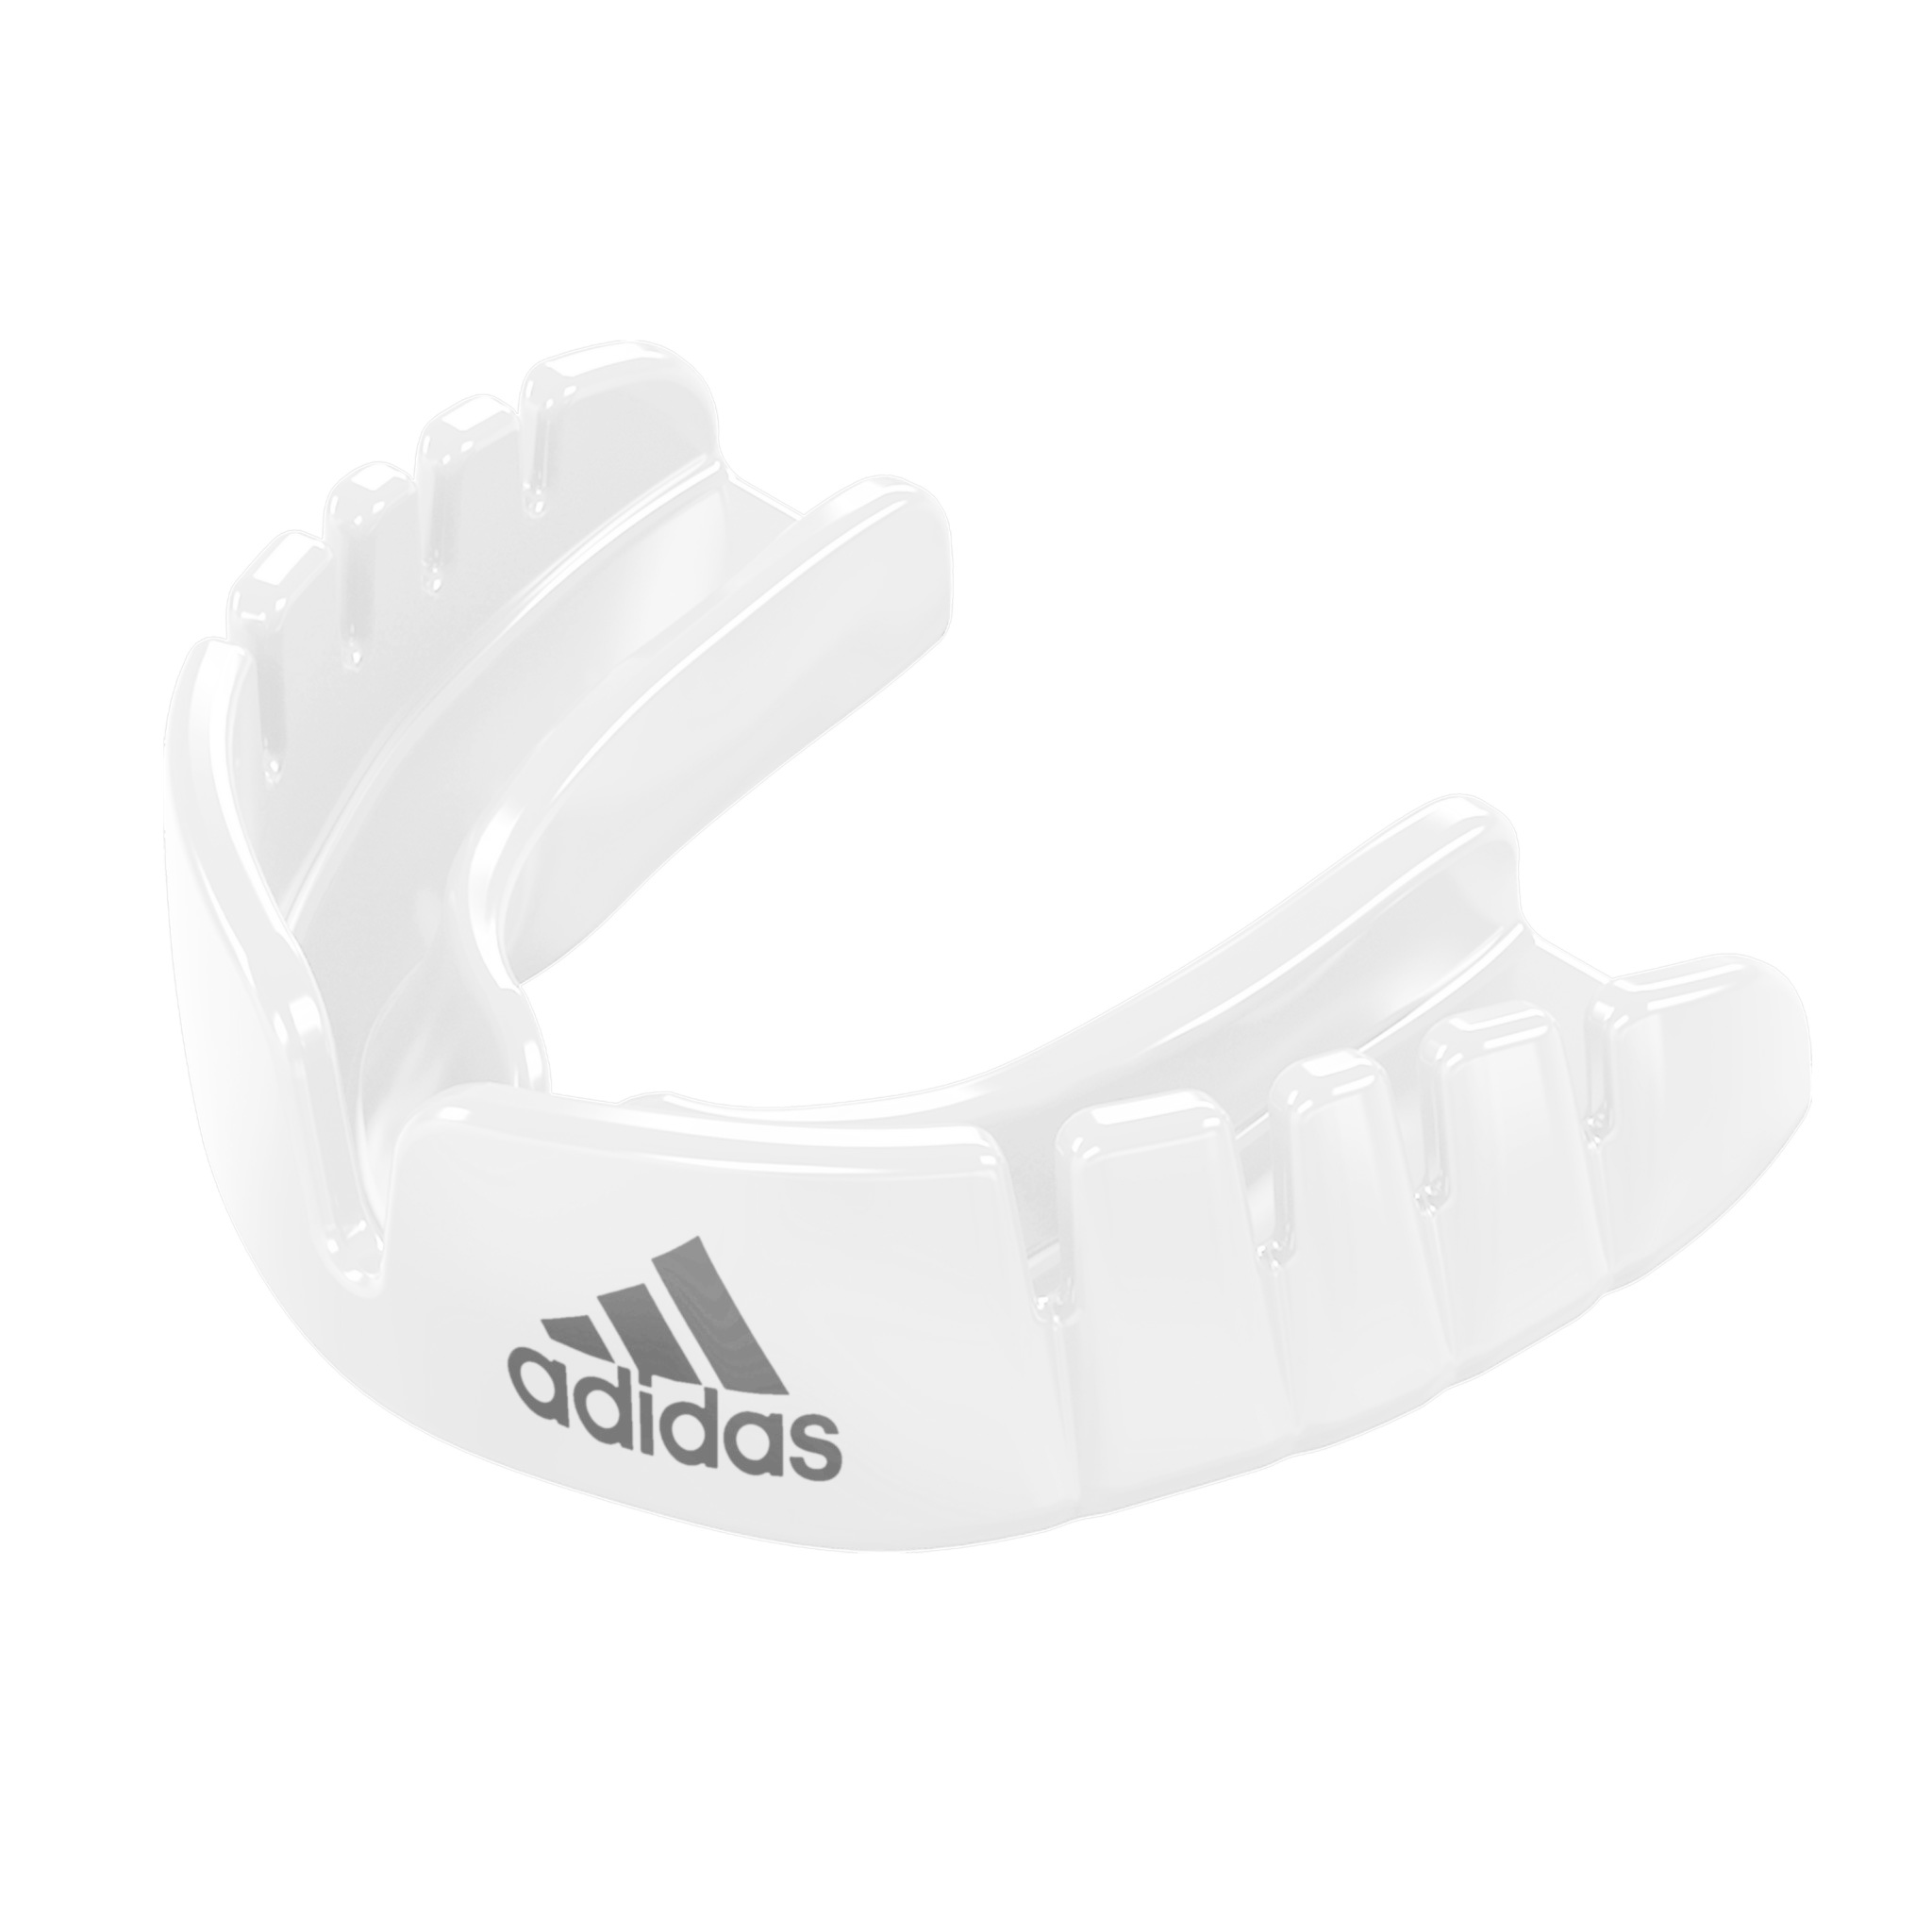 Adidas Adidas mouthguard snap fit junior wit